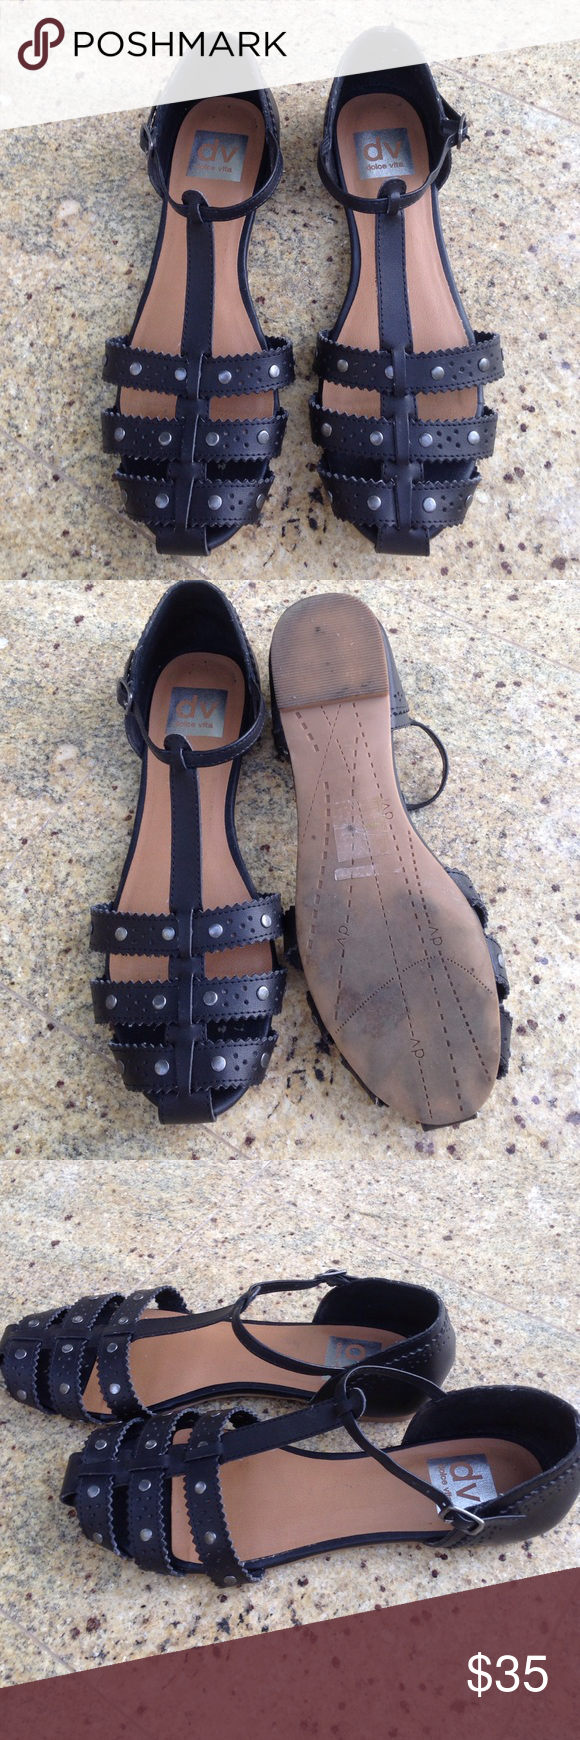 Black sandals size 7 - Dolce Vita Black Sandals Size 7 1 2 In Excellent Used Condition As